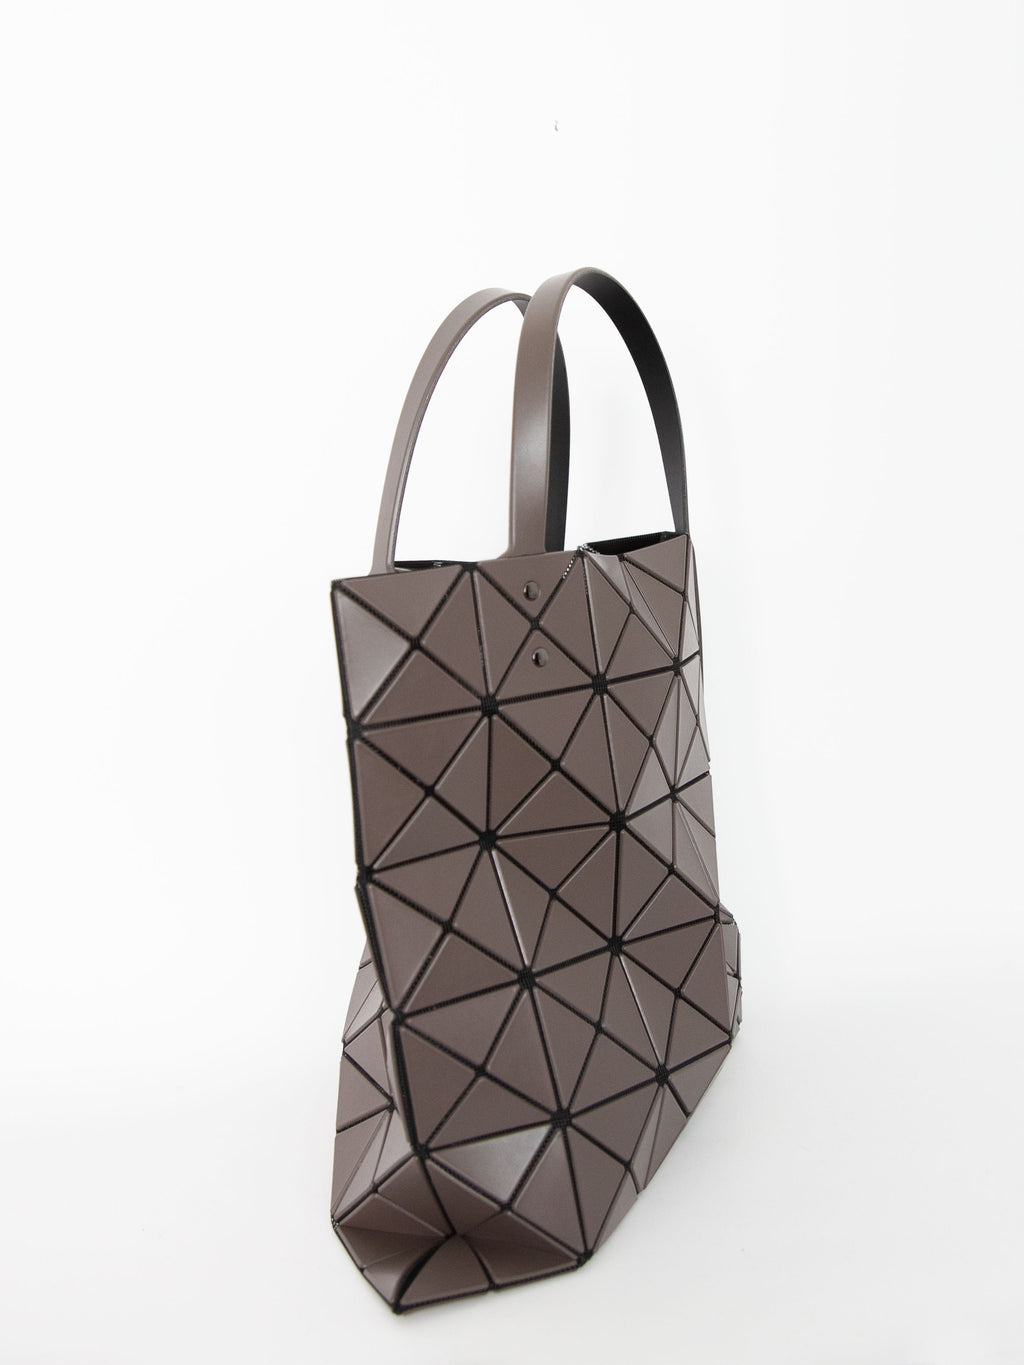 Lucent Matte II Tote Bag - Brown